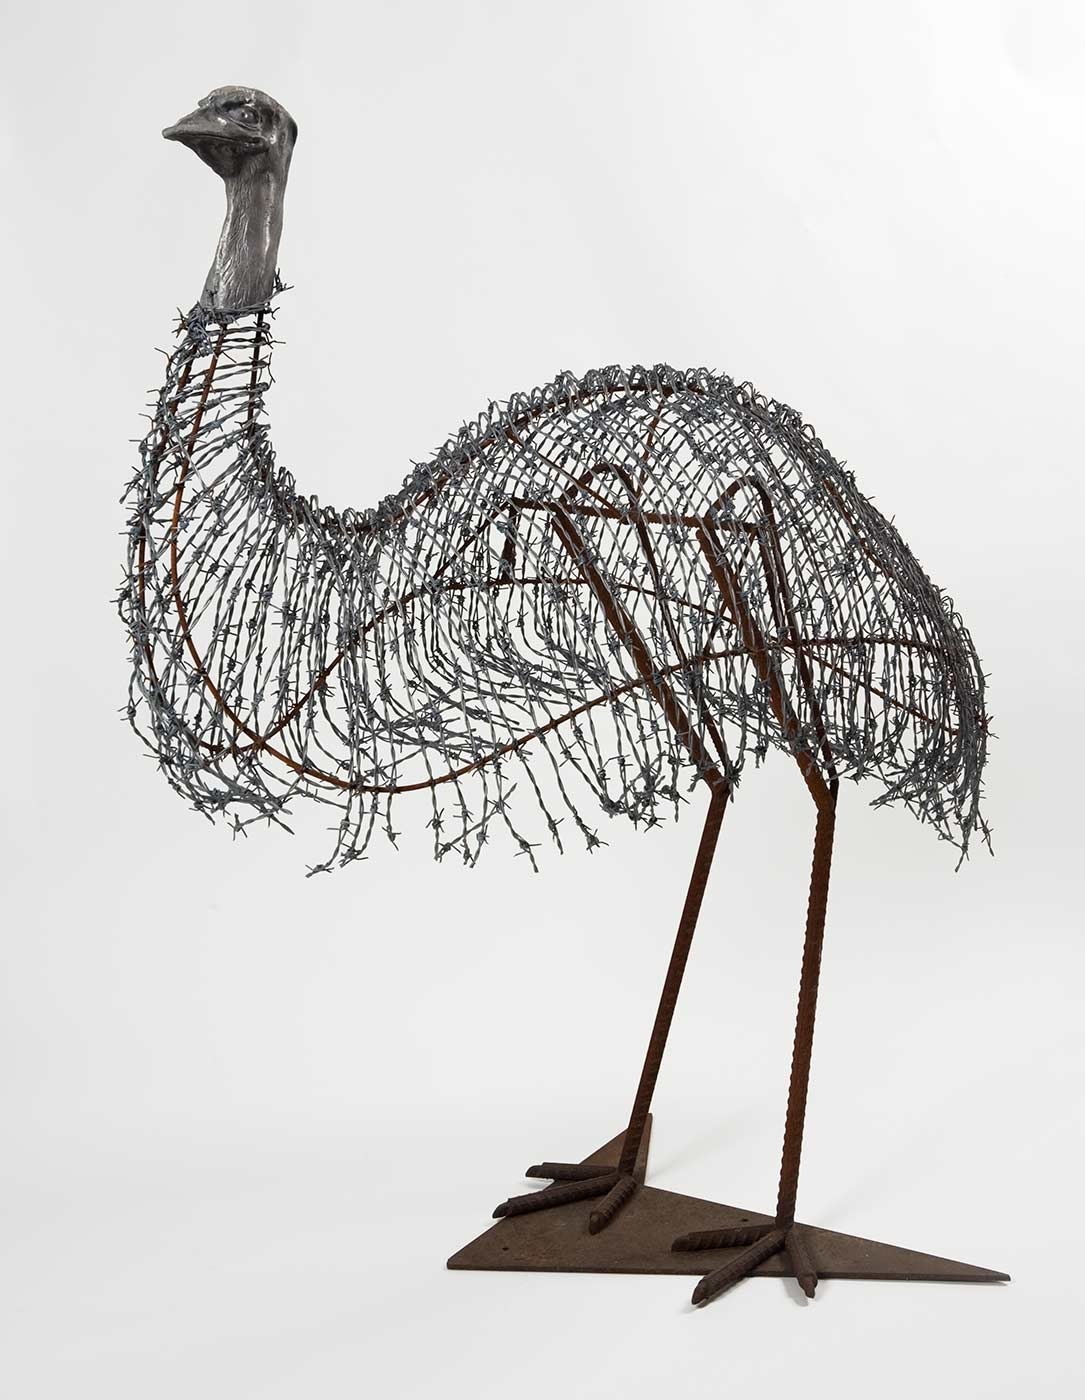 Sculpture of an emu fabricated from found objects including barbed wire and iron rods. - click to view larger image